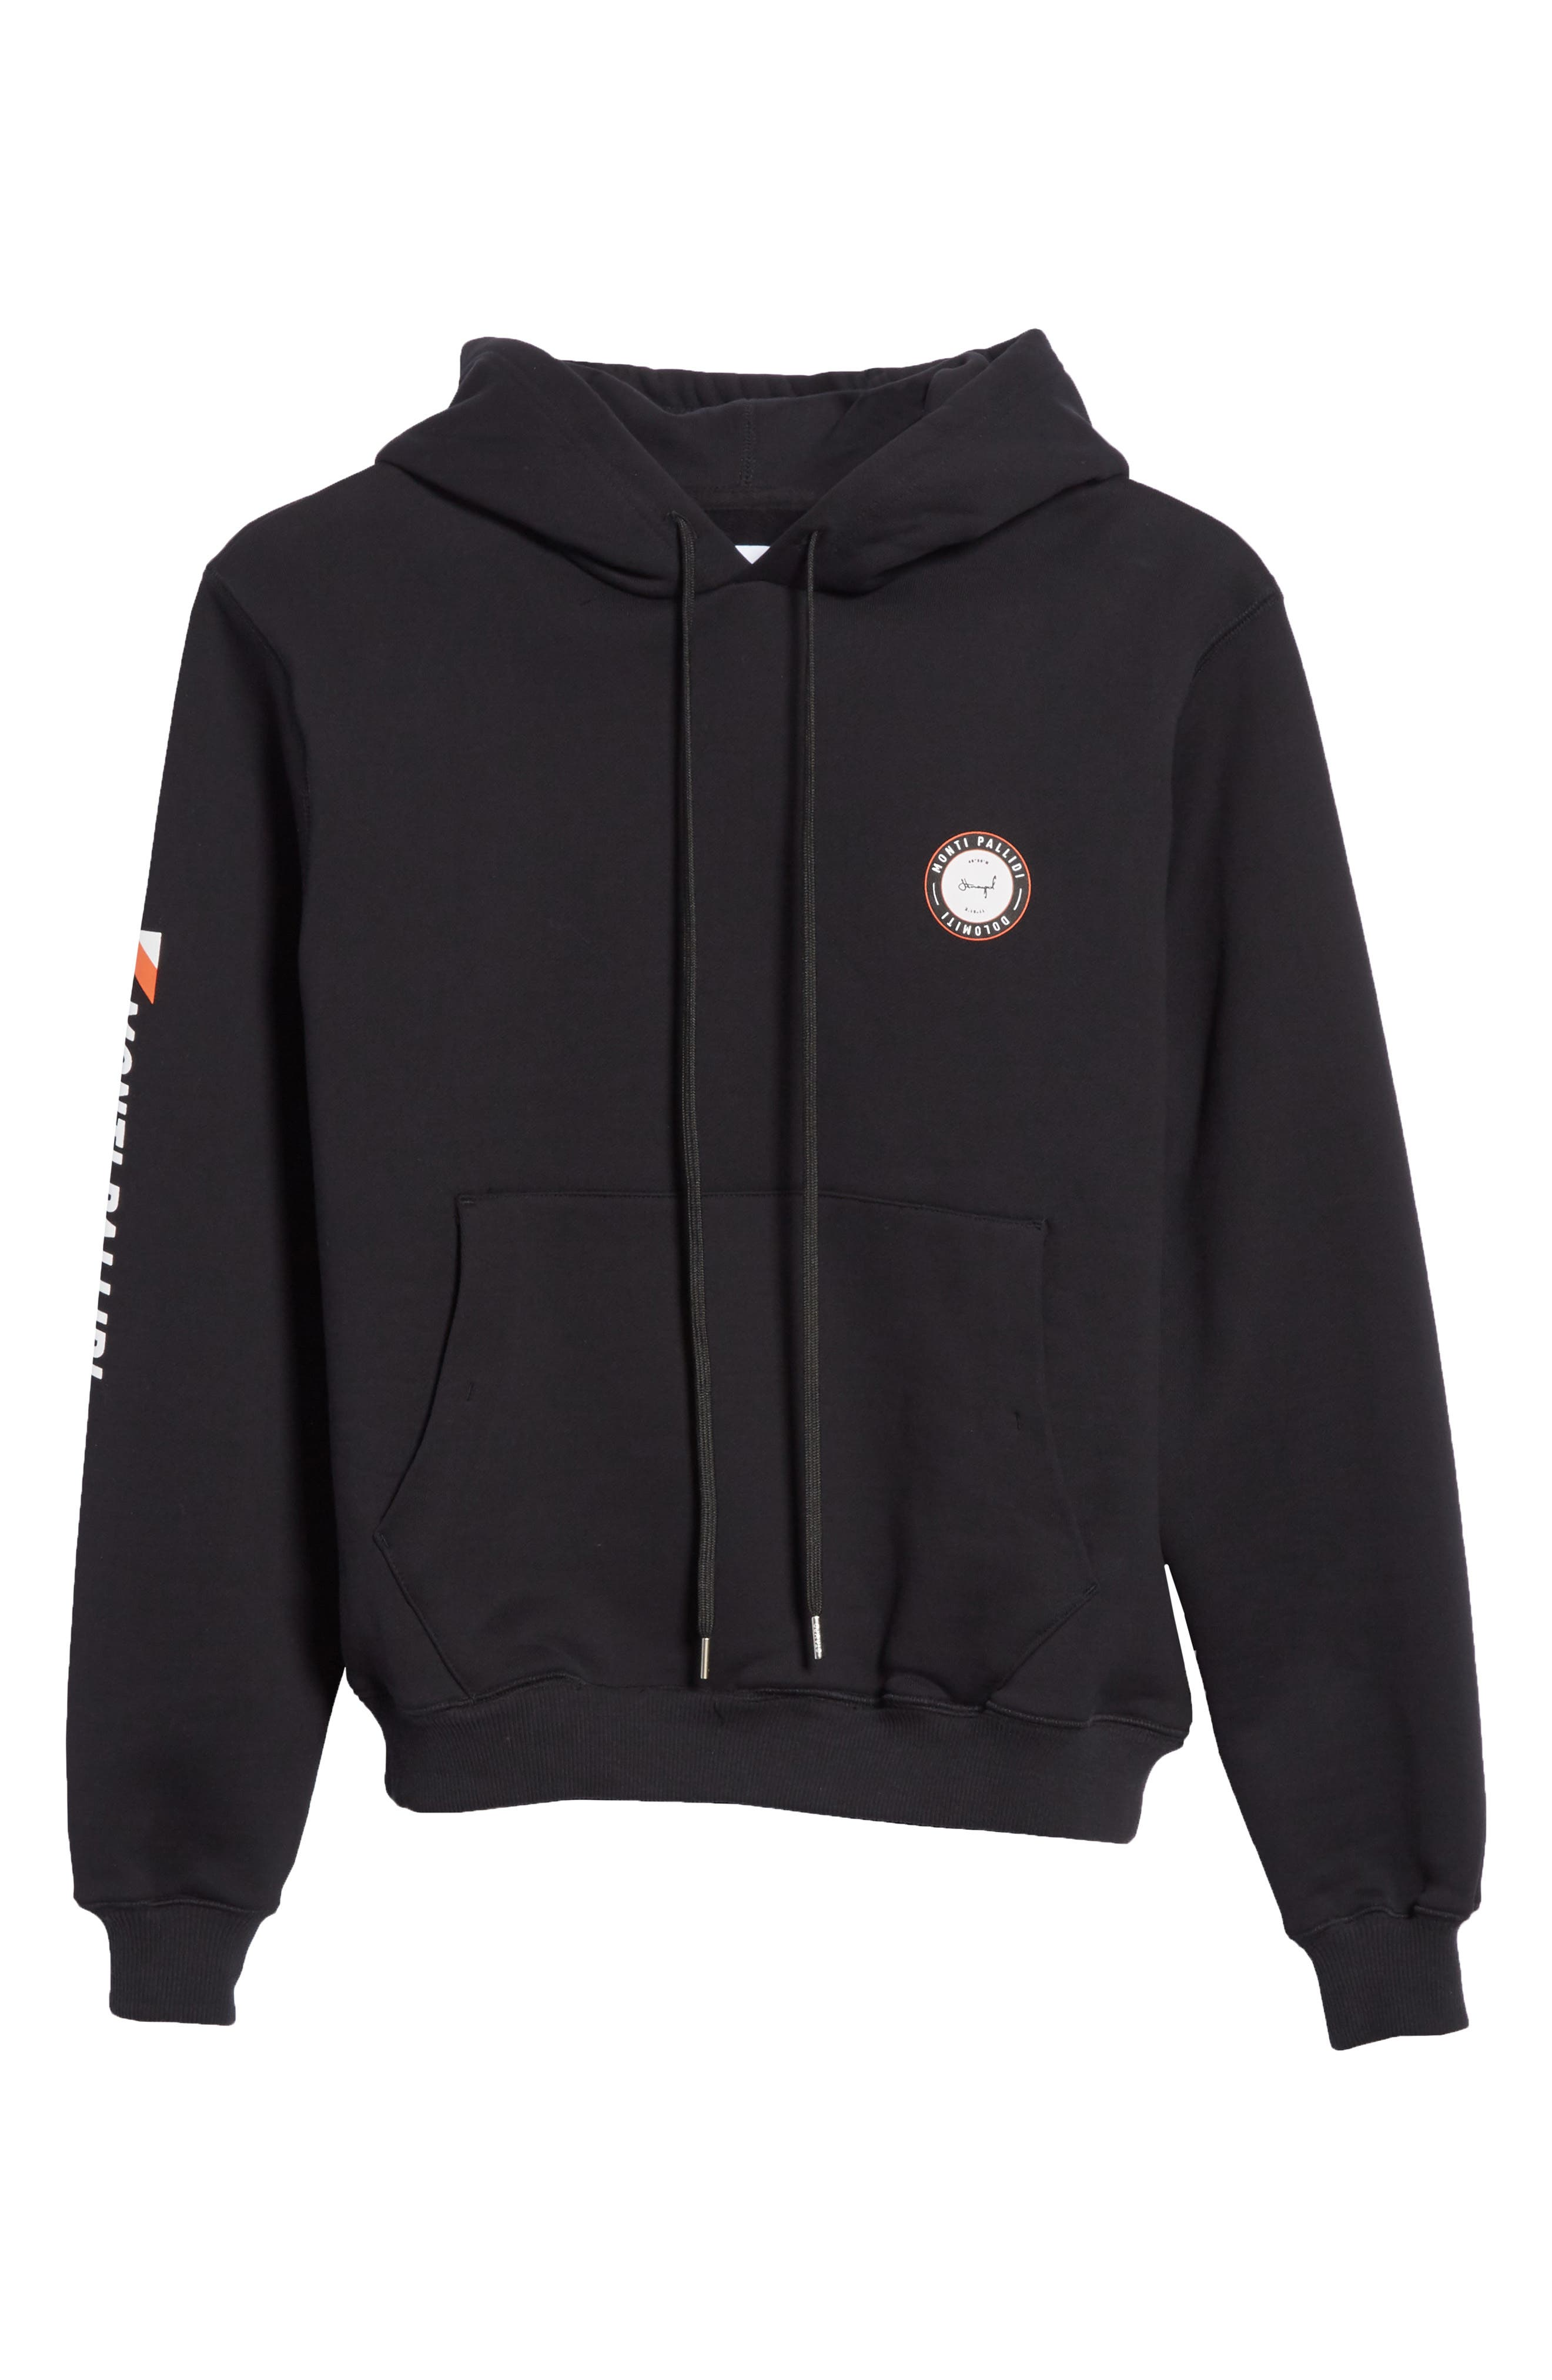 Monti Pallidi Graphic Hoodie,                             Alternate thumbnail 6, color,                             001